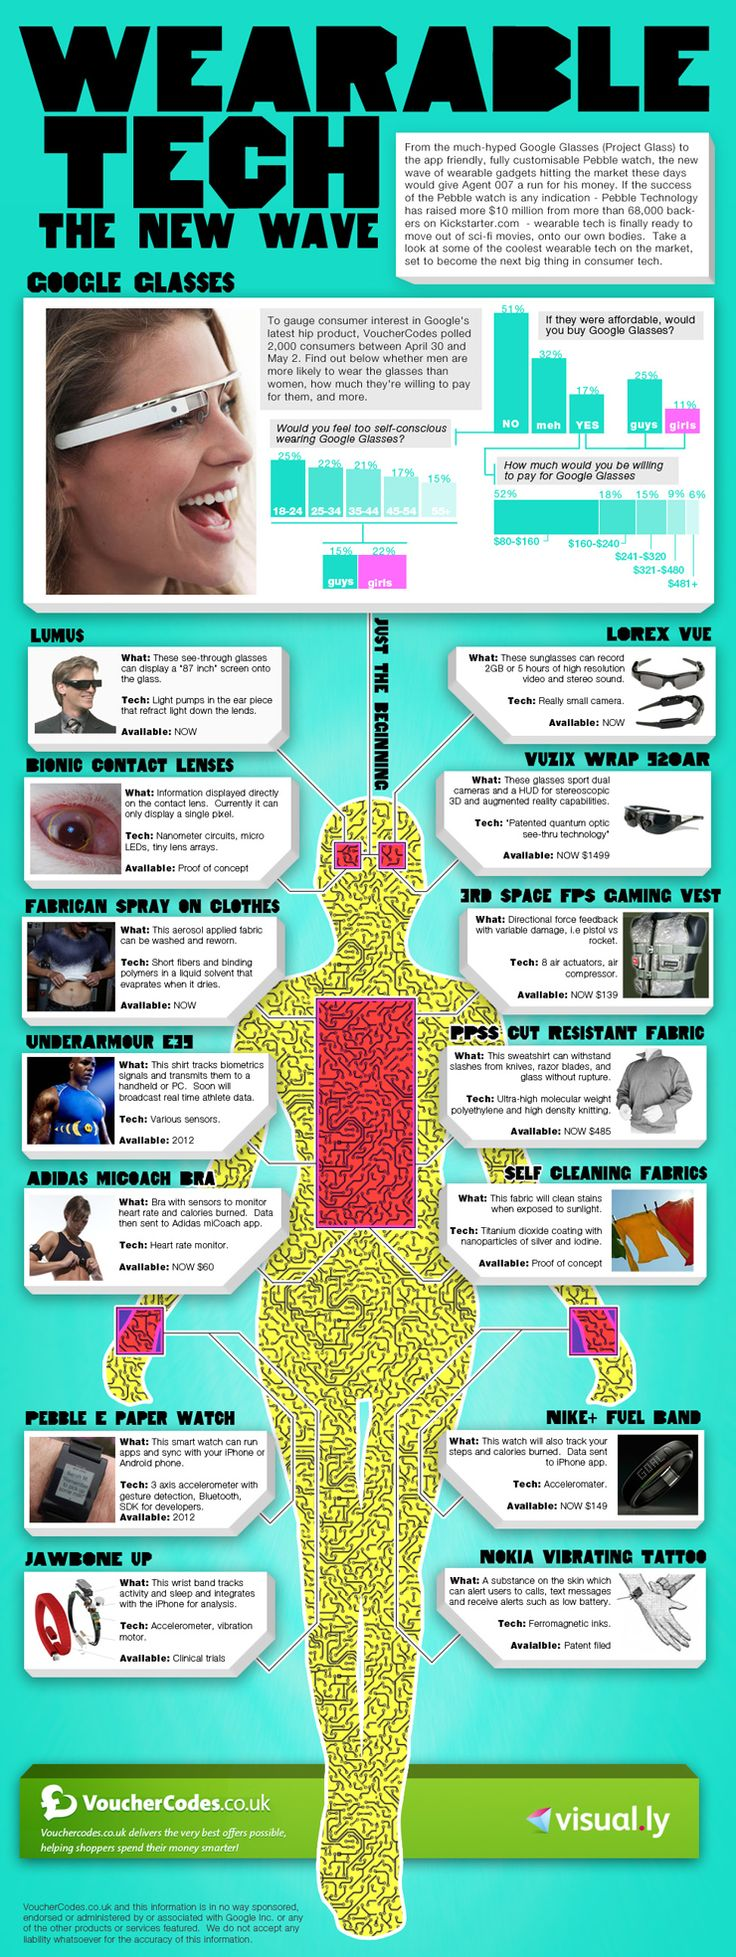 Wearable Technology concepts